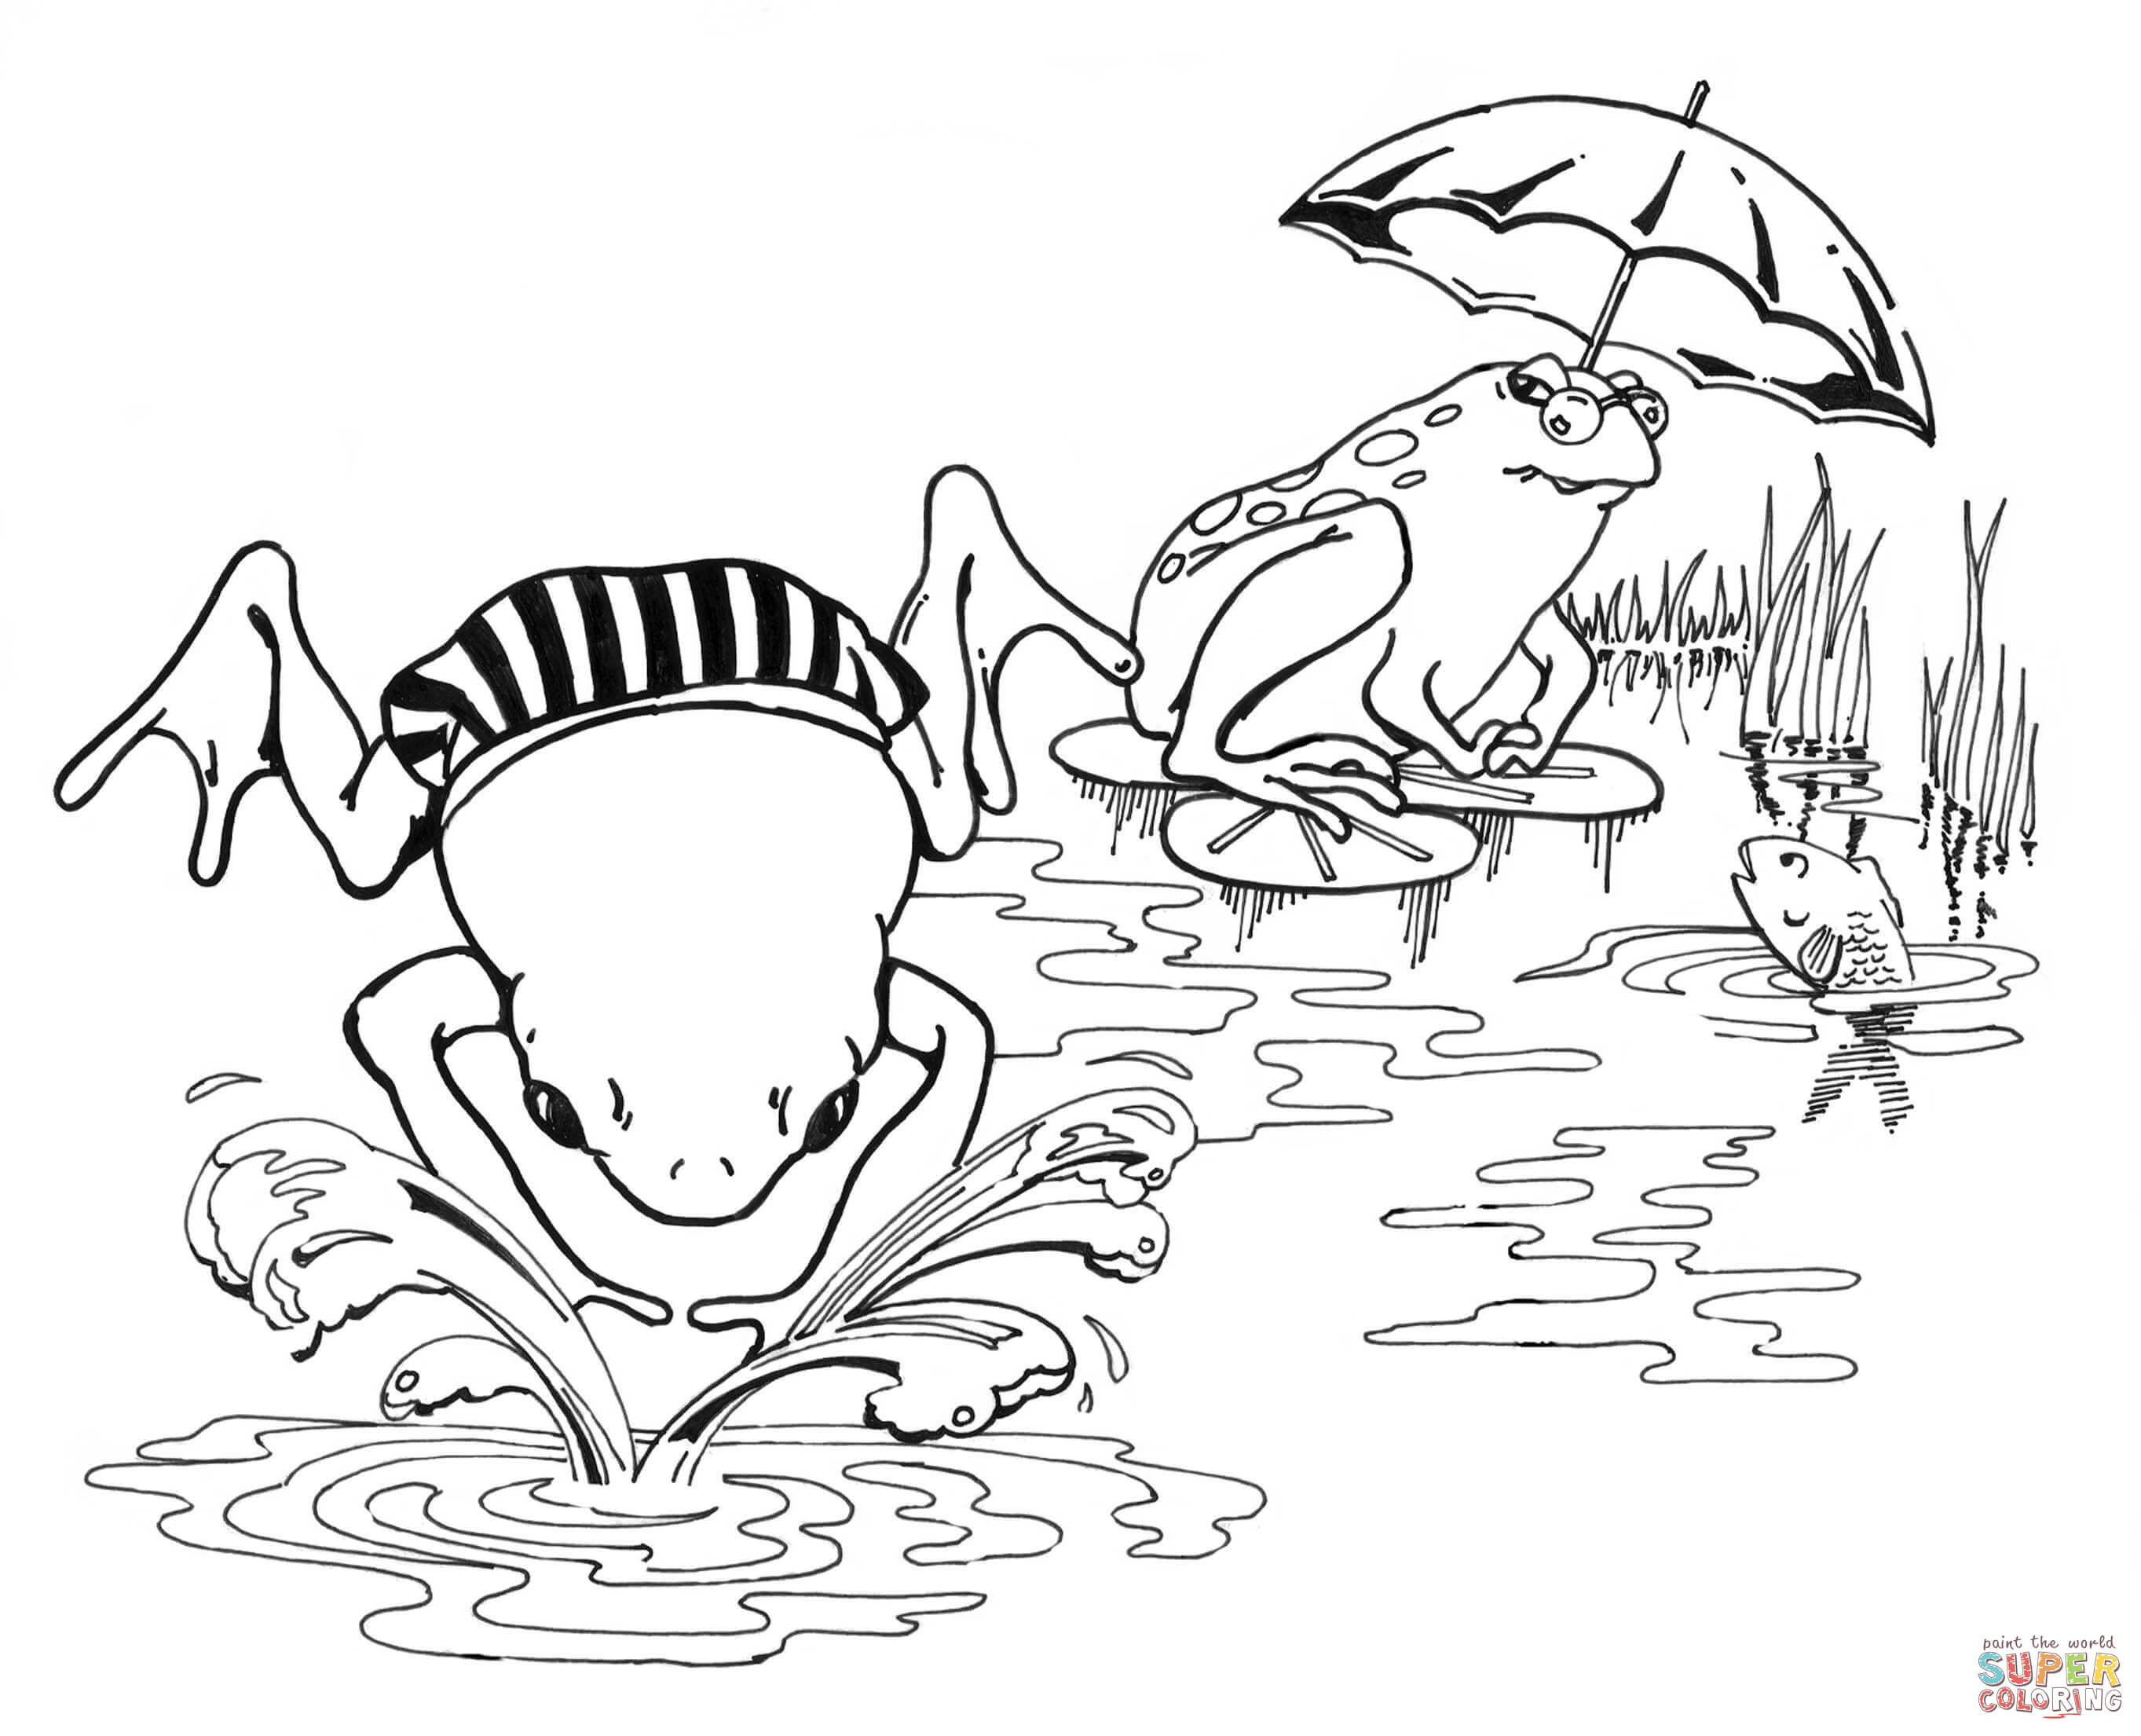 Amphibian clipart coloring page Pages Free Coloring Swimming Frogs